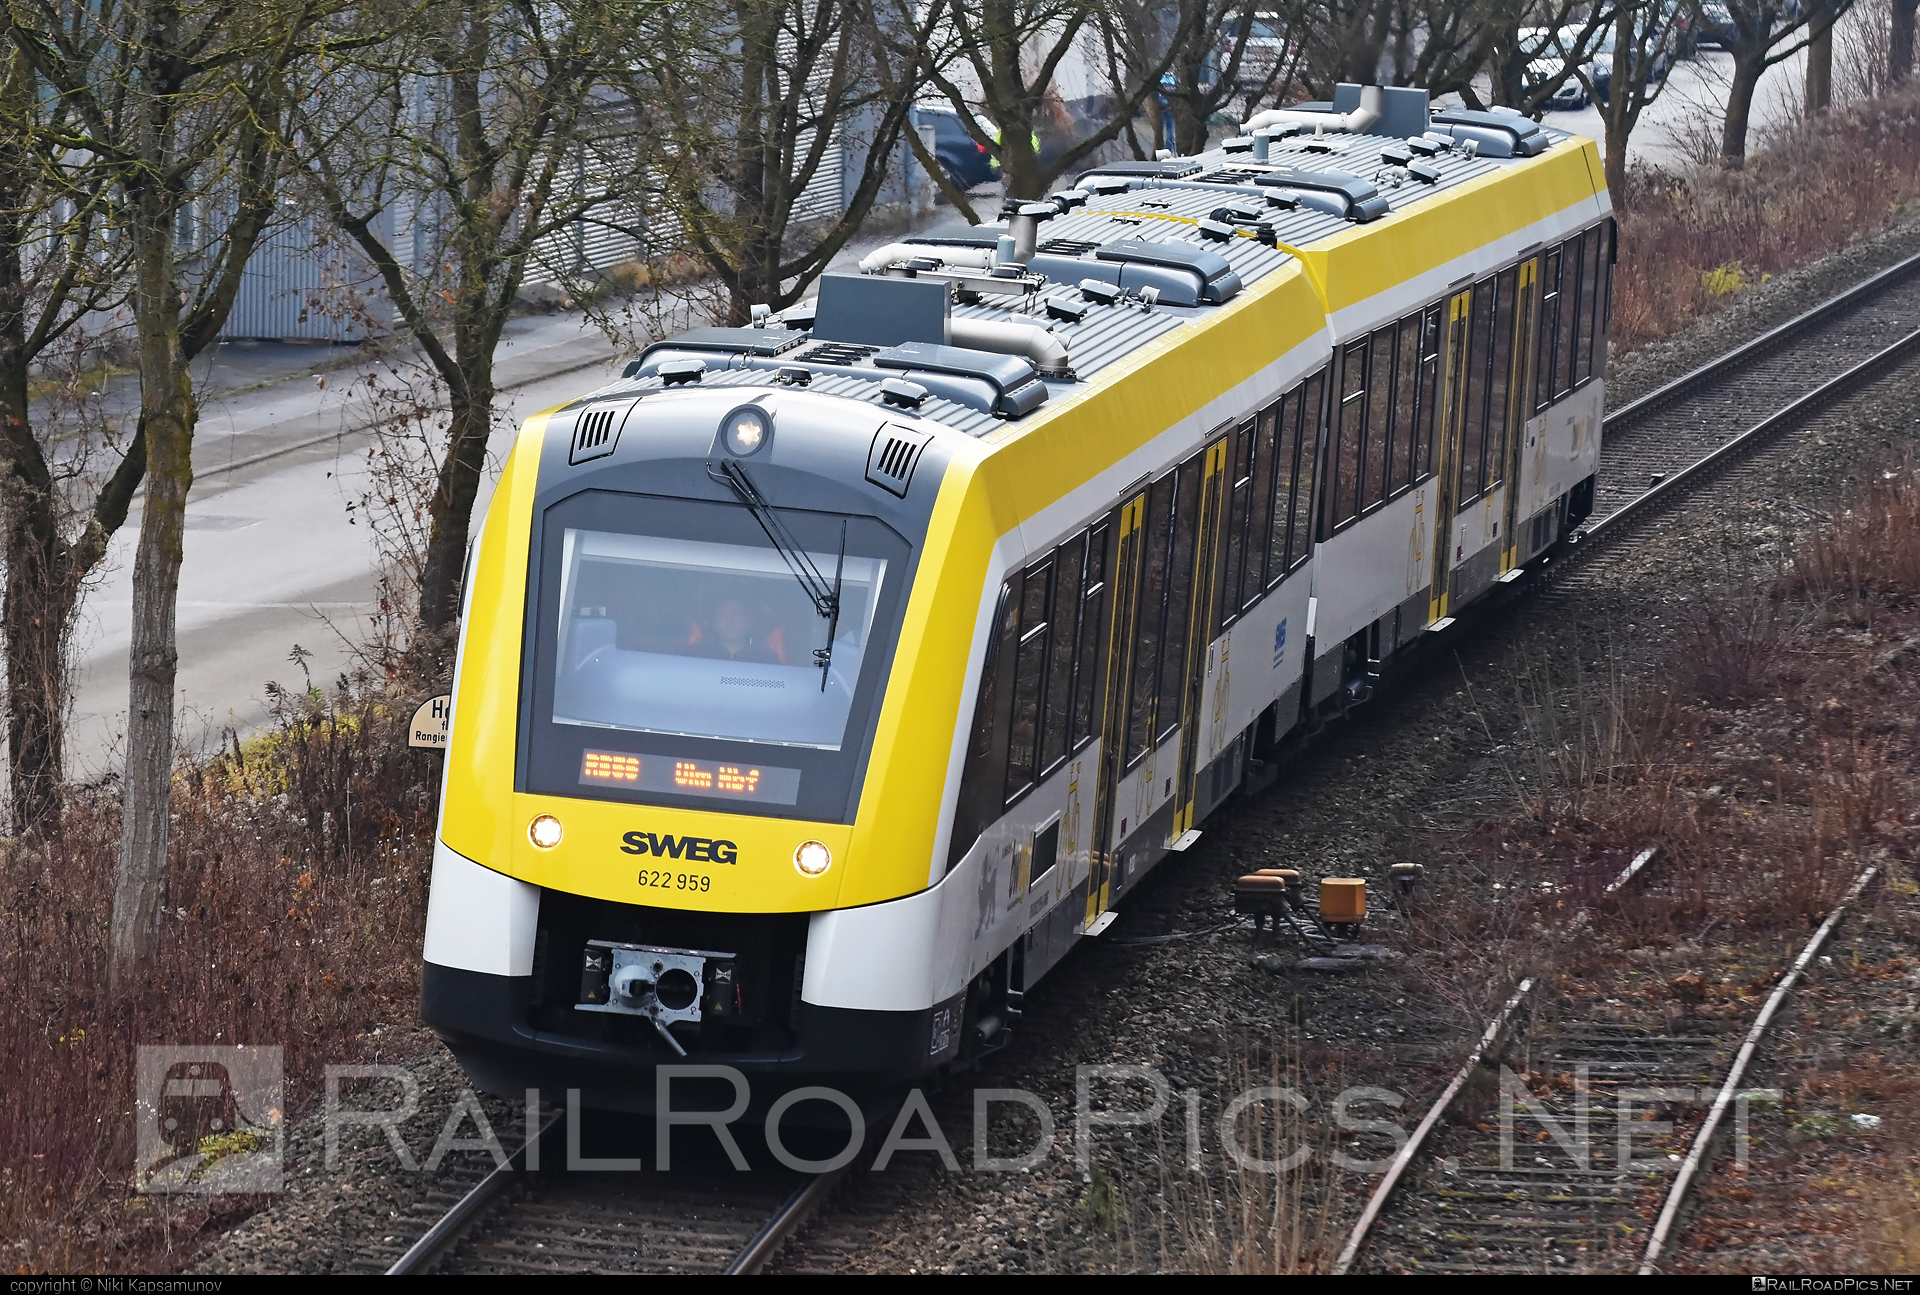 Alstom Coradia LINT 54 - 622 959 operated by Südwestdeutsche Landesverkehrs-AG #alstom #alstomcoradia #alstomcoradialint #alstomcoradialint54 #coradialint54 #sweg